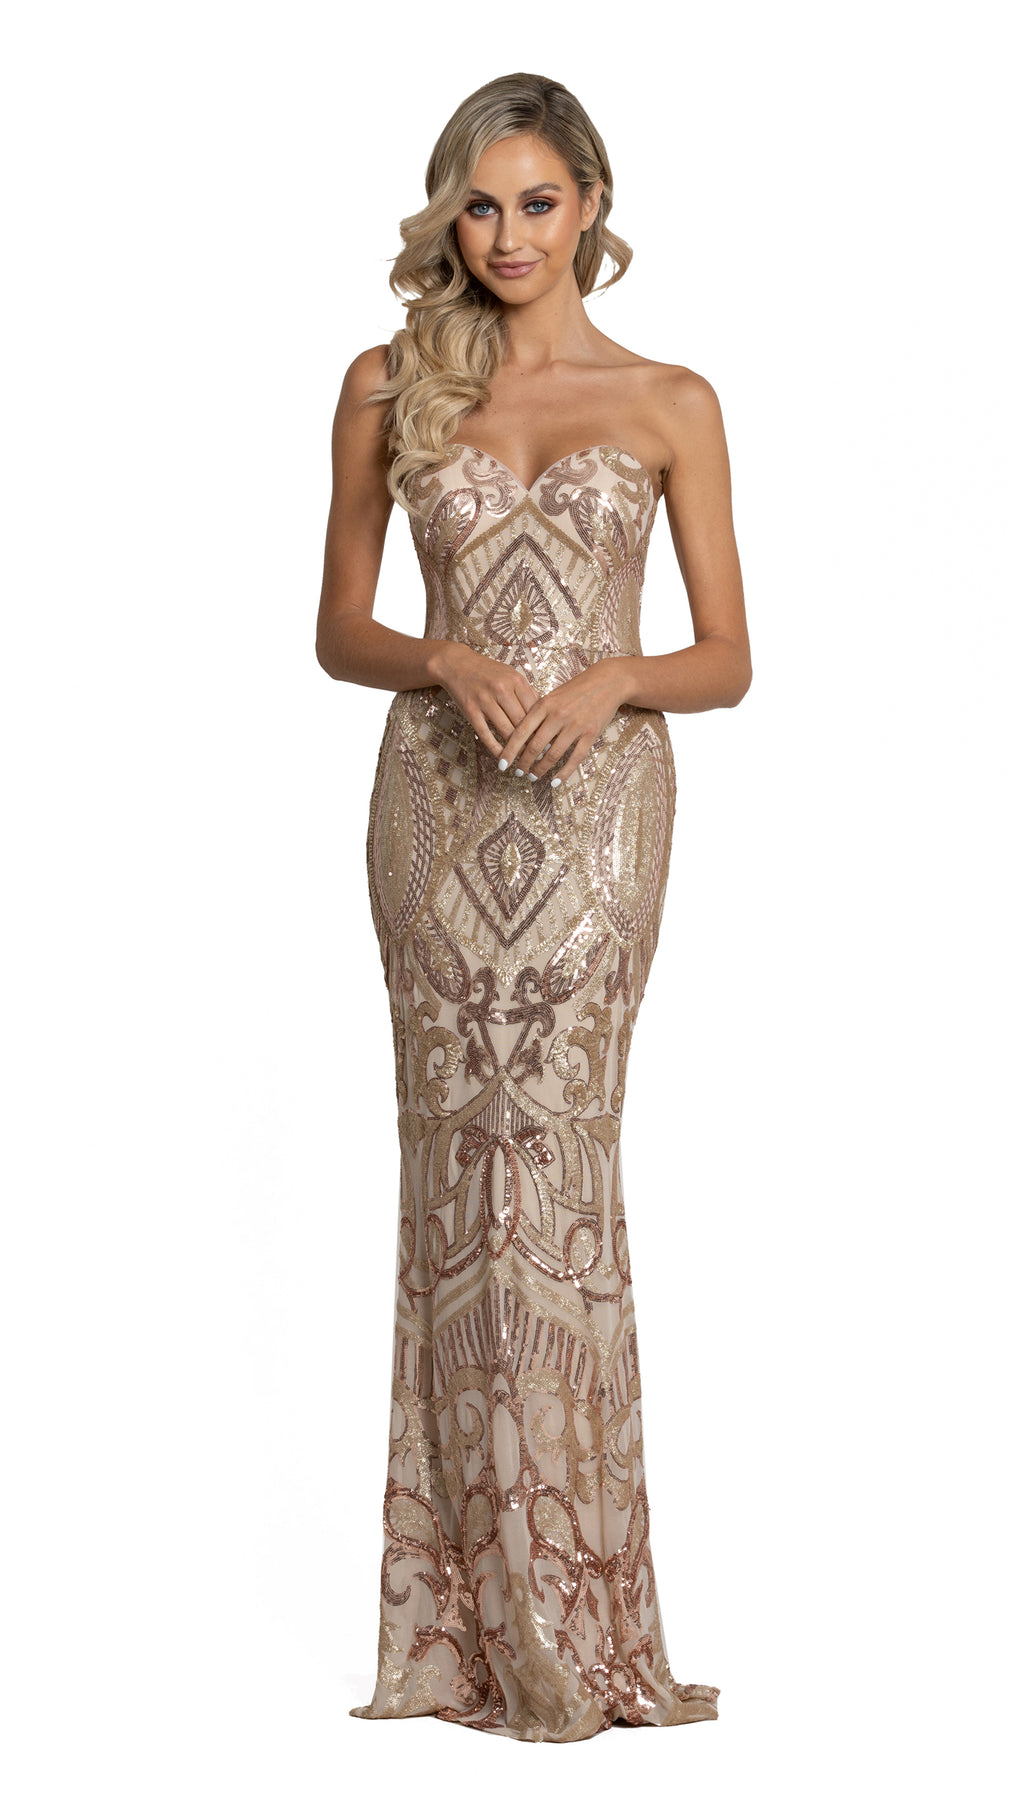 Navin Sweetheart Pattern Sequin Gown in rose gold